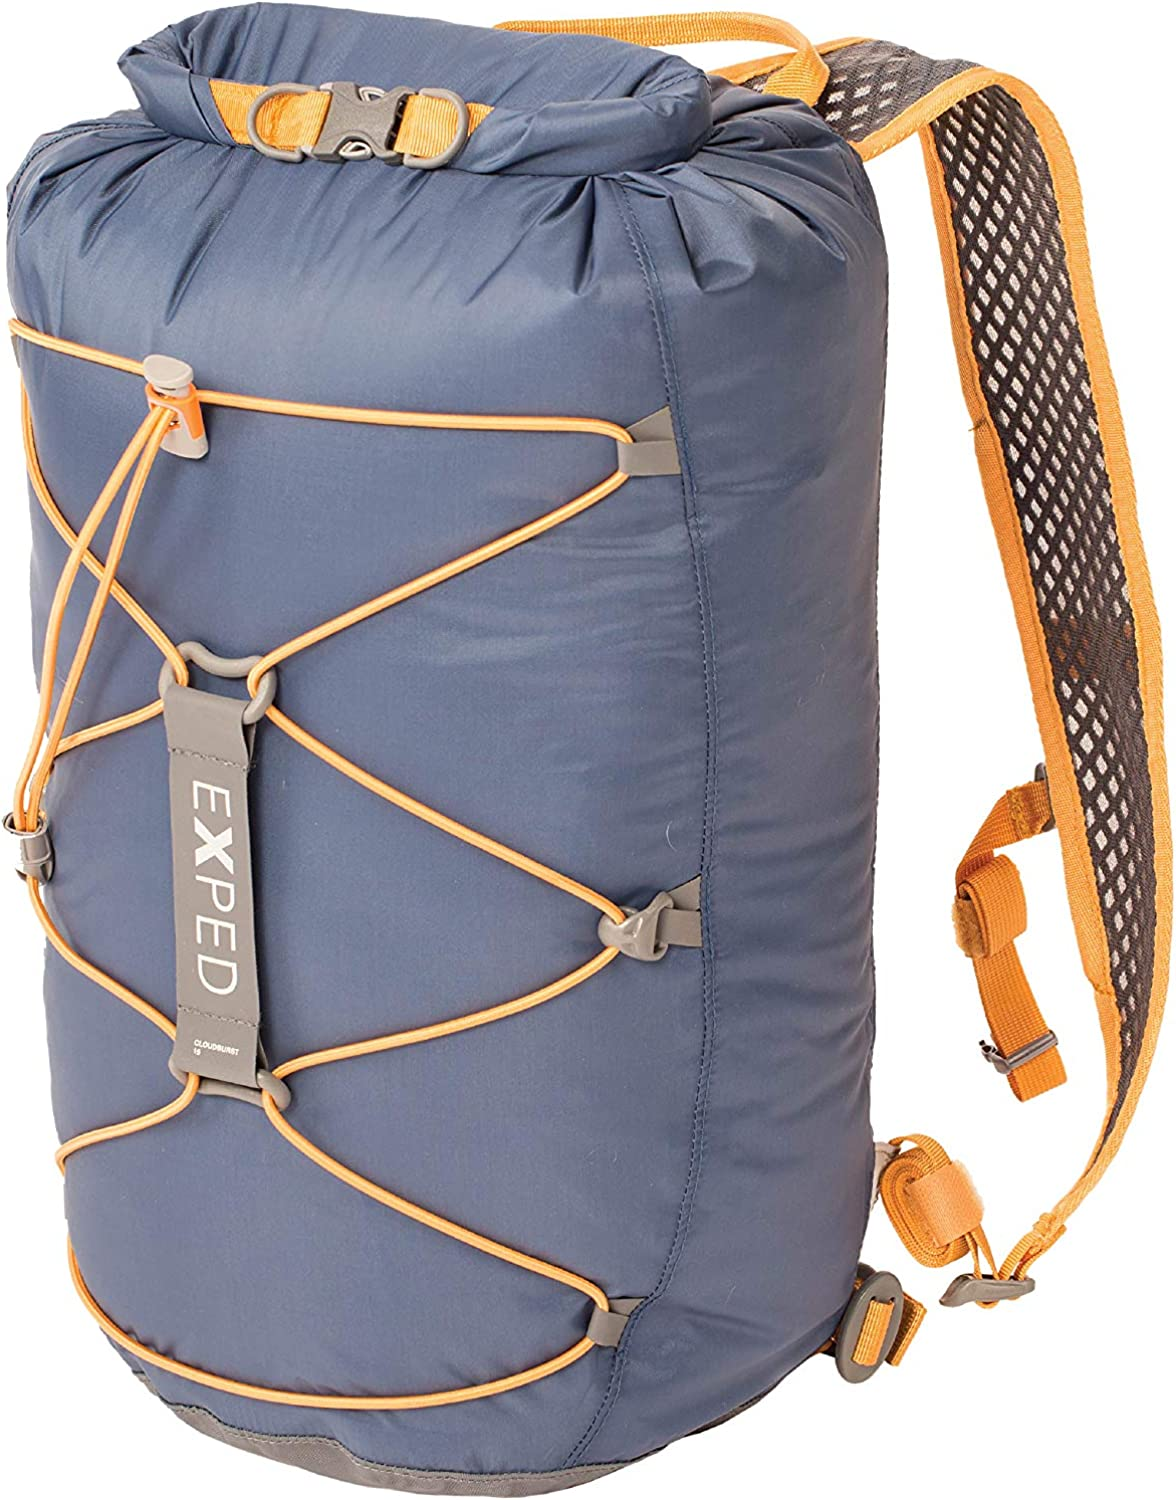 EXPED Cloudburst 15 Waterproof Roll-Top Backpack